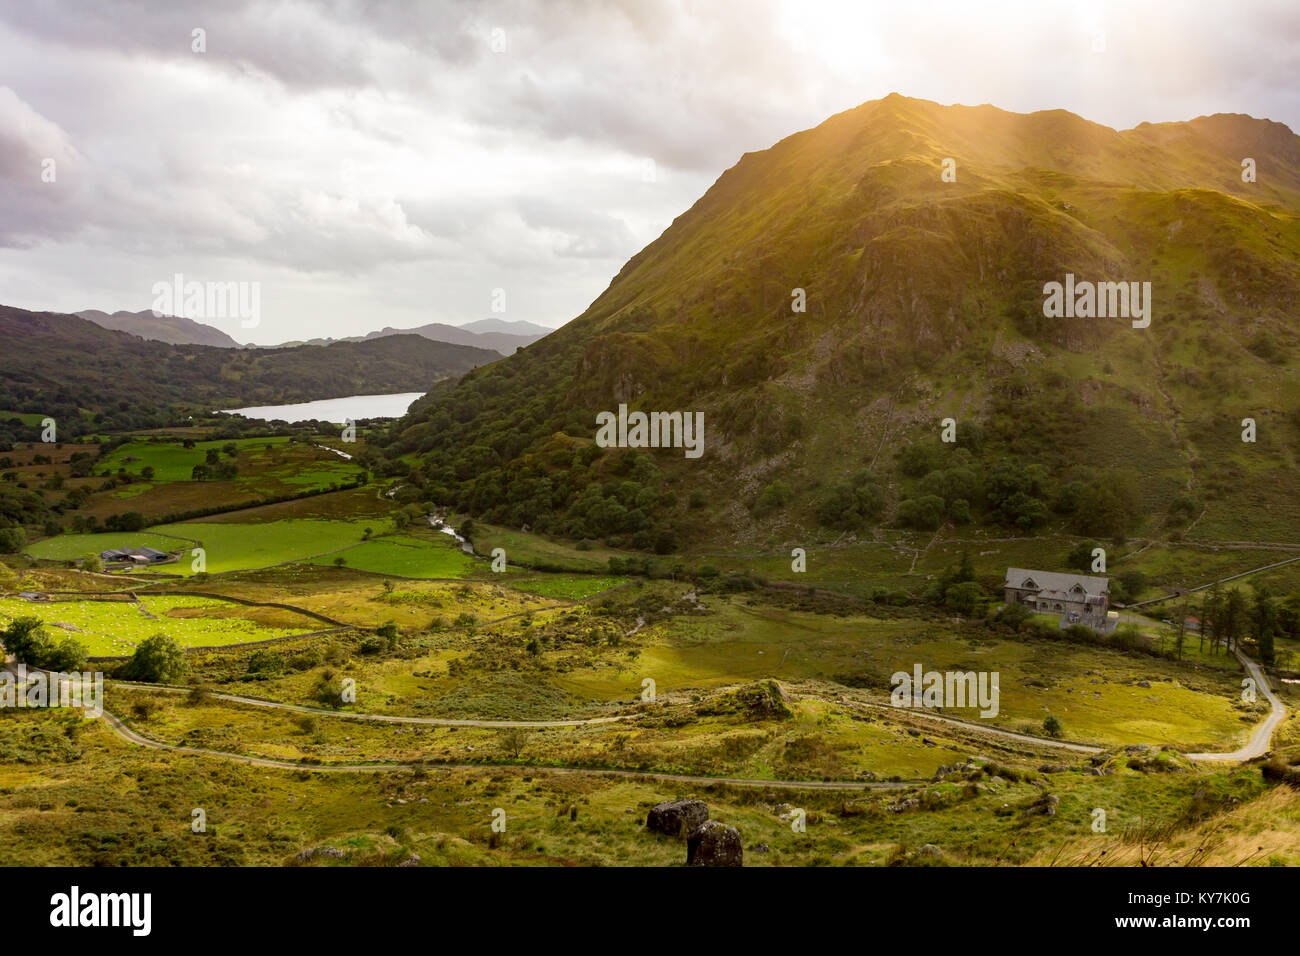 Landscape scene looking South from Snowdonia viewpoint - Stock Image